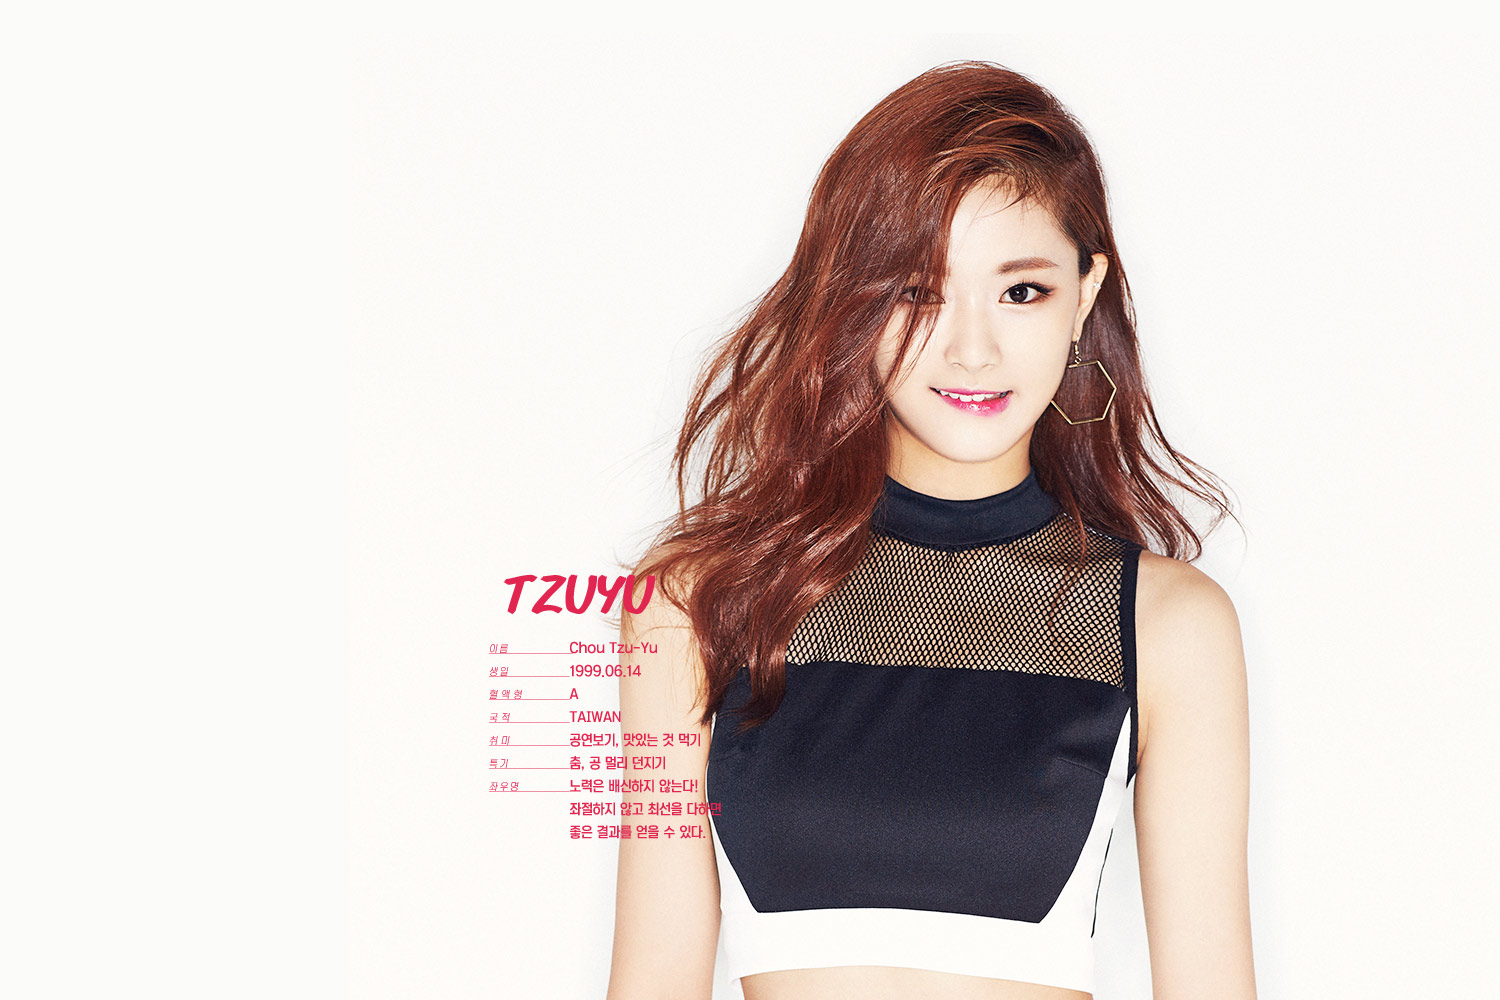 Twice Jyp Ent Images Tzuyu S Wallpaper Hd Wallpaper And Background